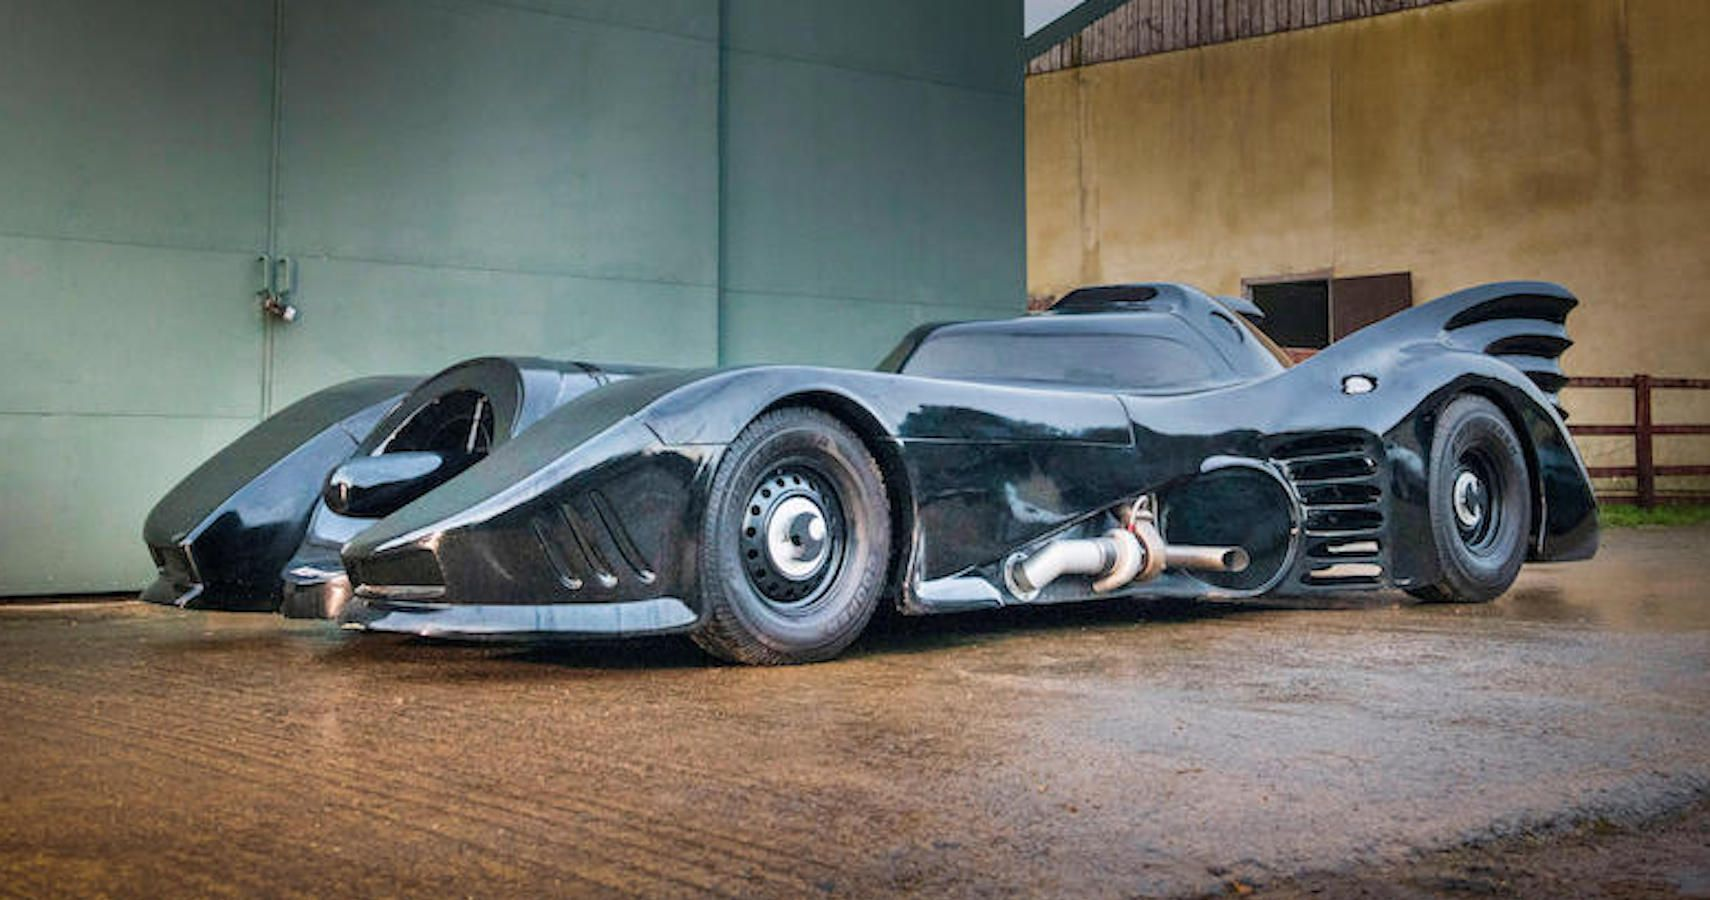 Start Measuring Your Garage To Make Room For This Batmobile Replica Up For Auction